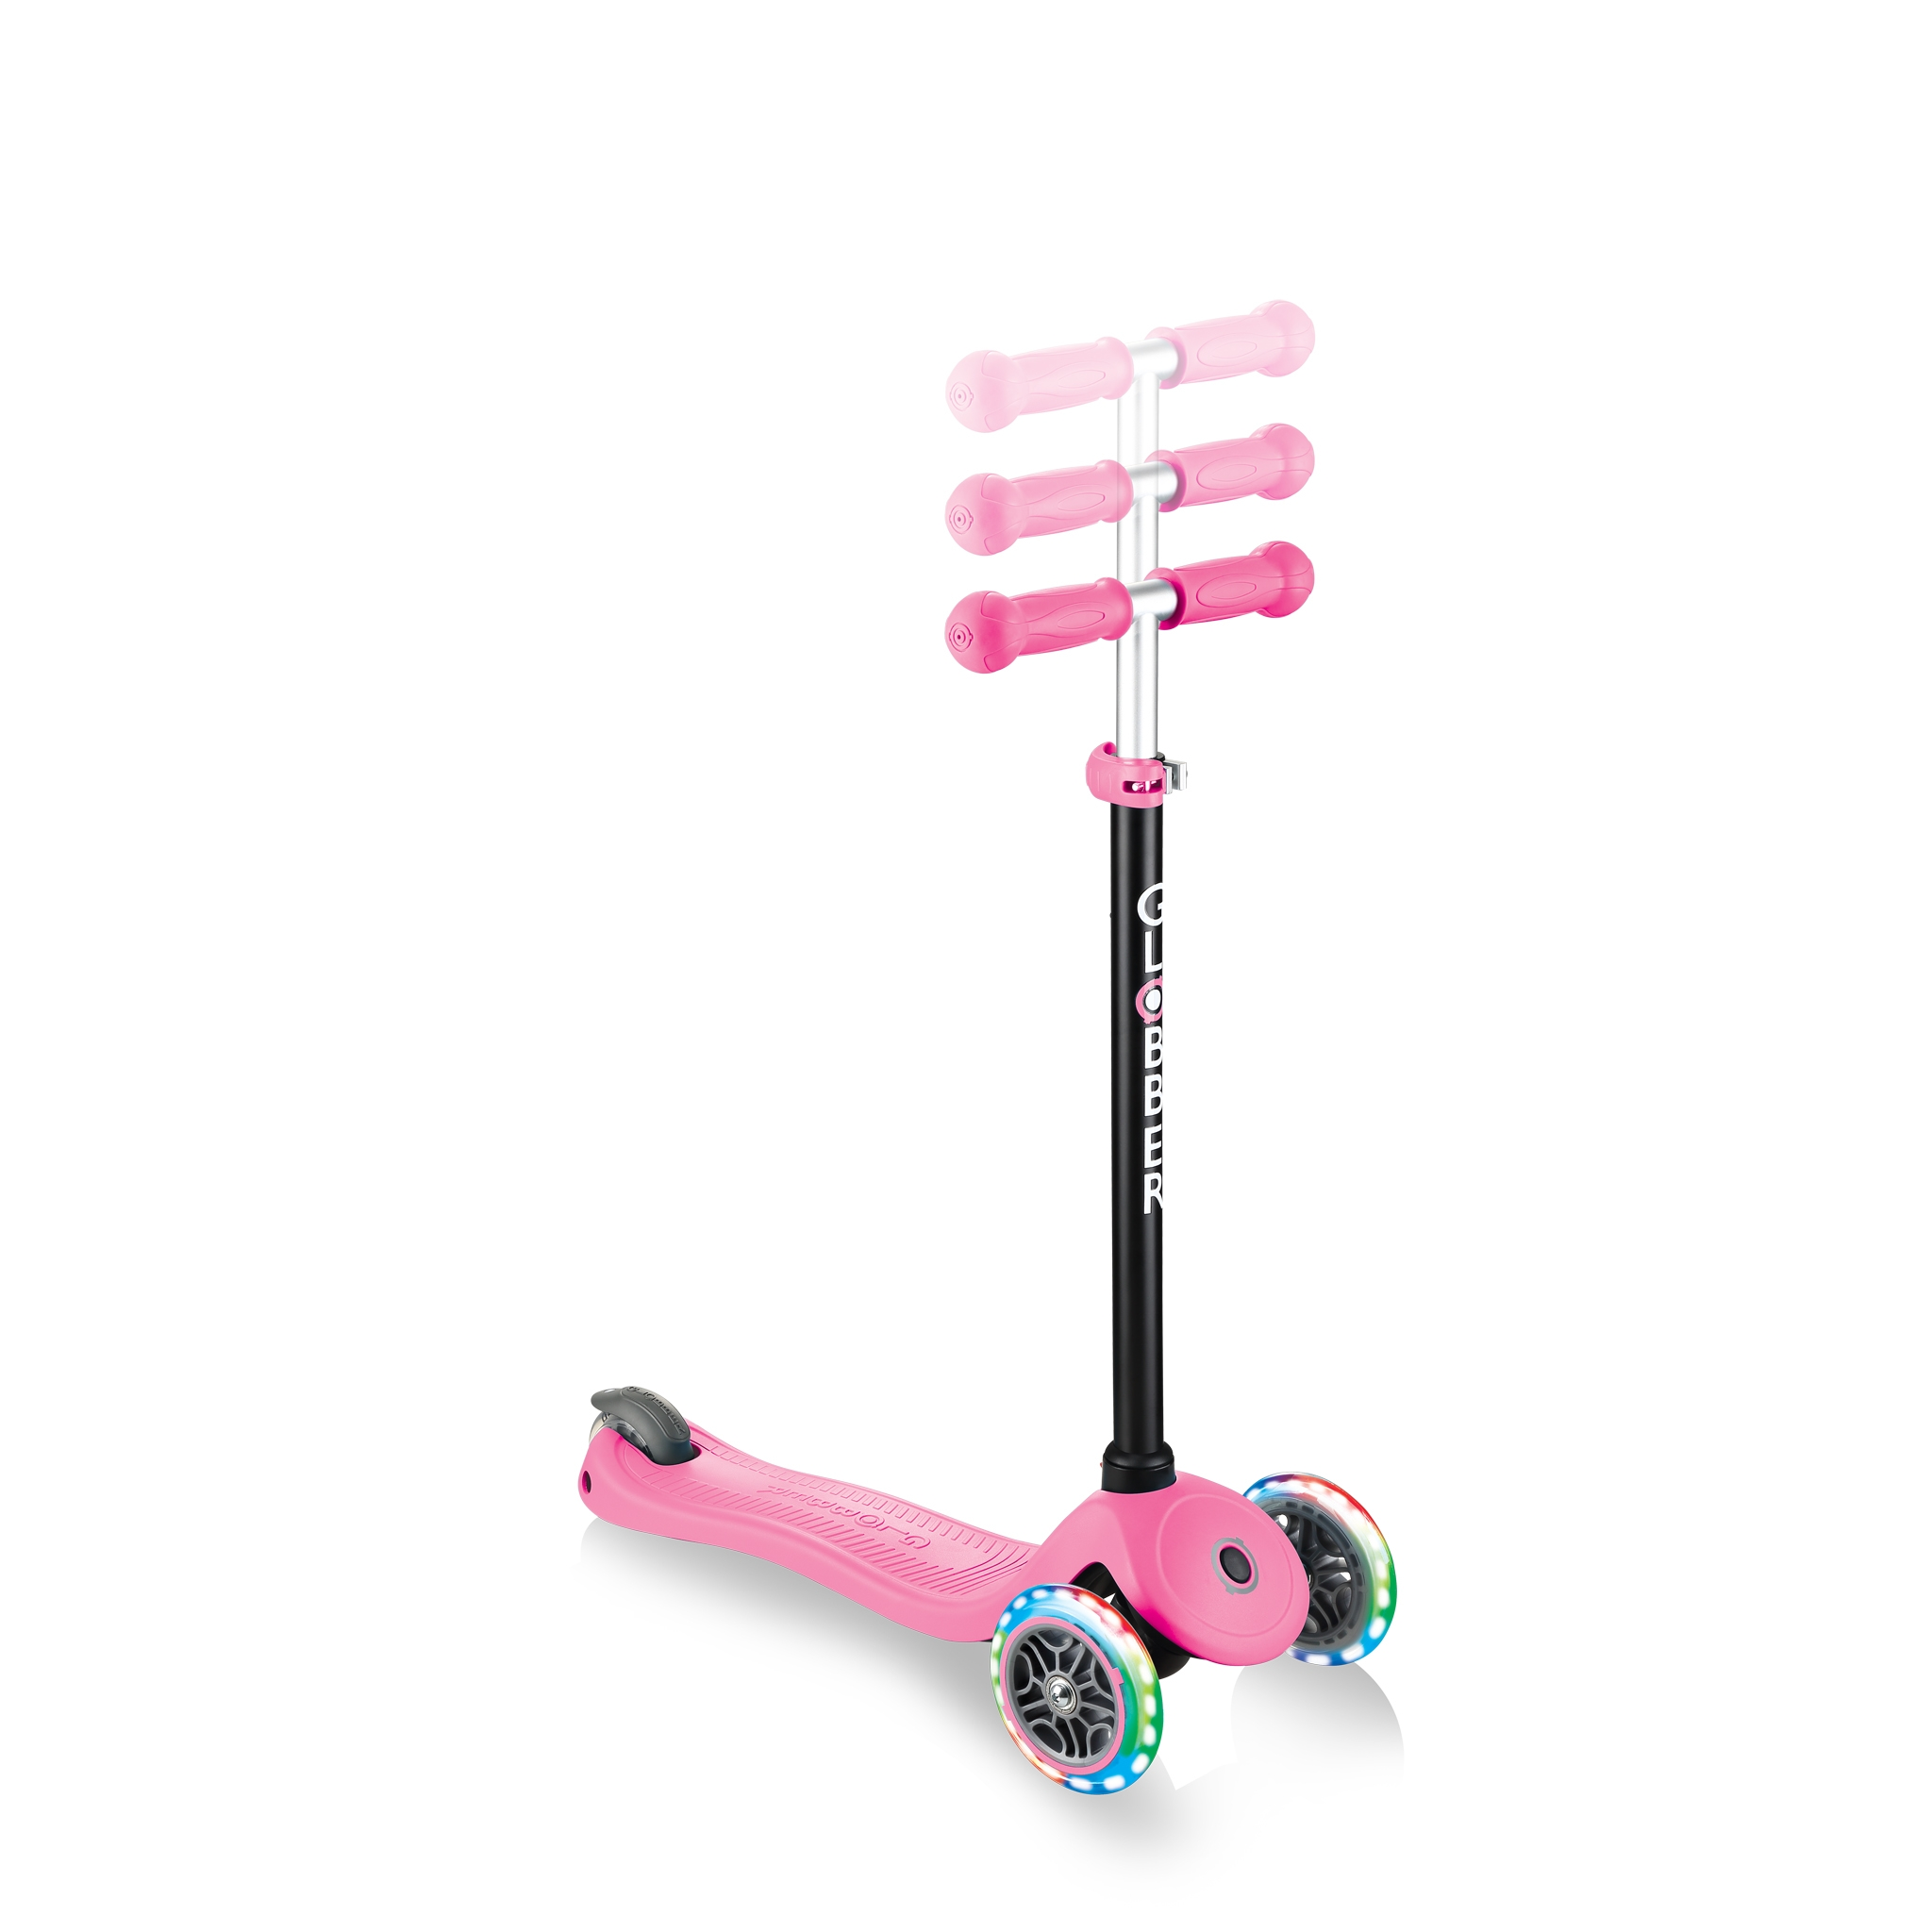 GO-UP-SPORTY-PLUS-LIGHTS-scooter-with-seat-with-adjustable-T-bar_deep-pink 5